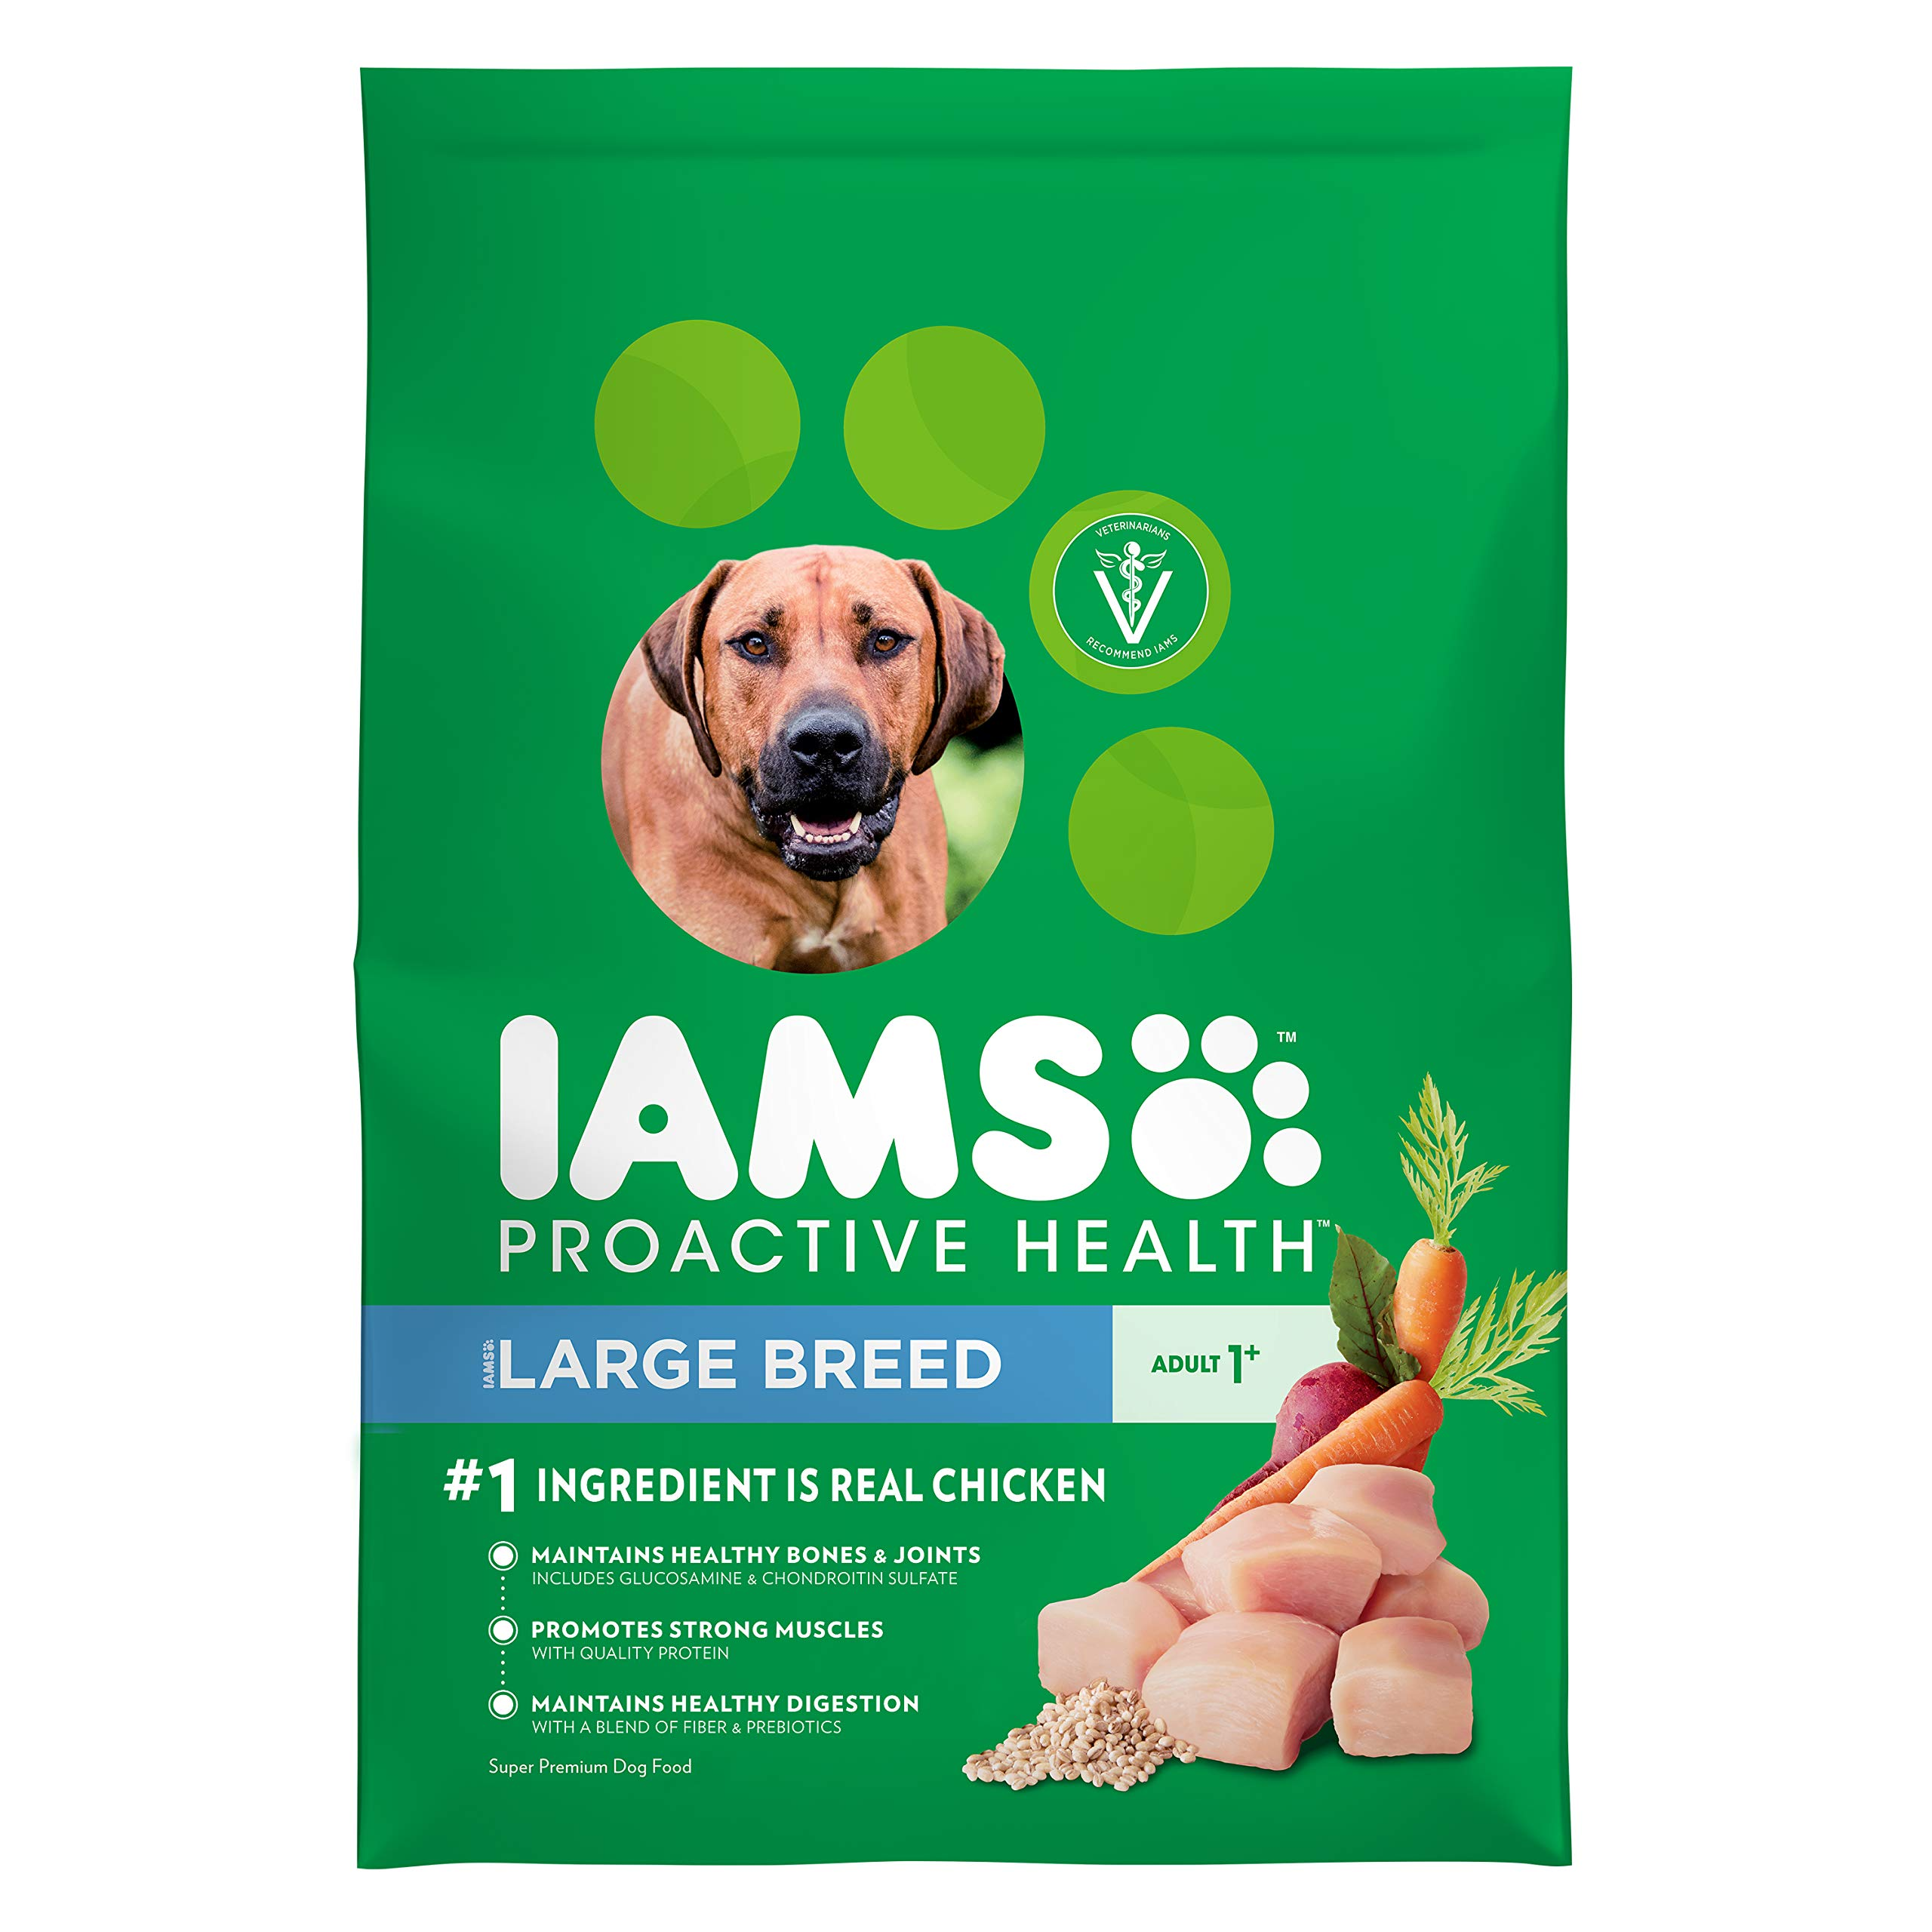 Iams ProActive Health Adult Dry Dog Food for Large Dogs – Chicken, 30 Pound Bag by Iams (Image #1)